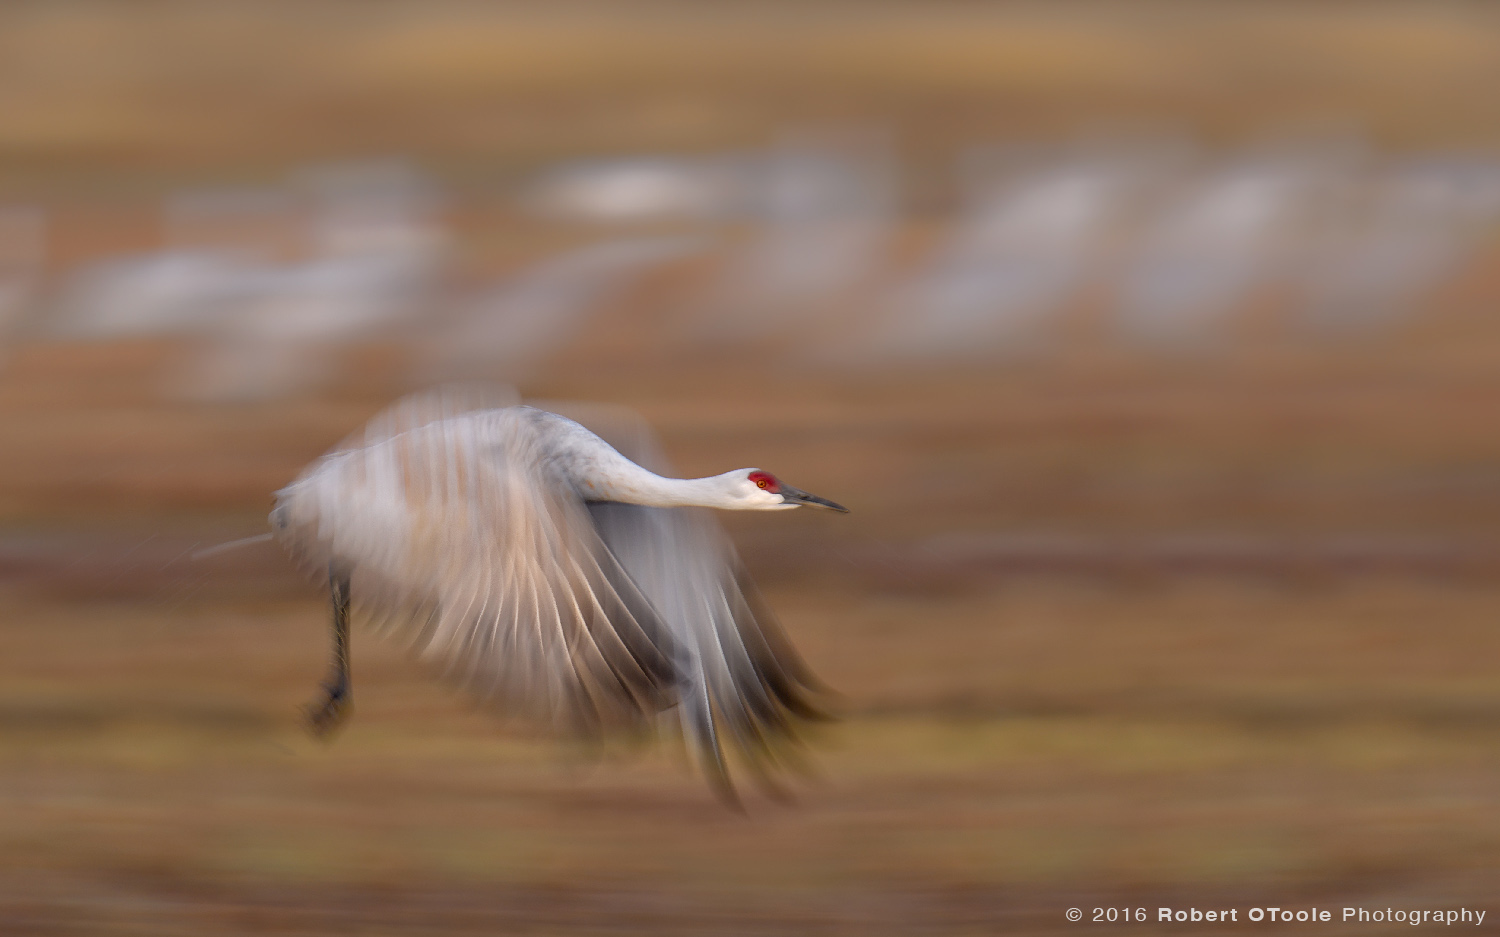 Sandhill Crane Flying at 1/40th s